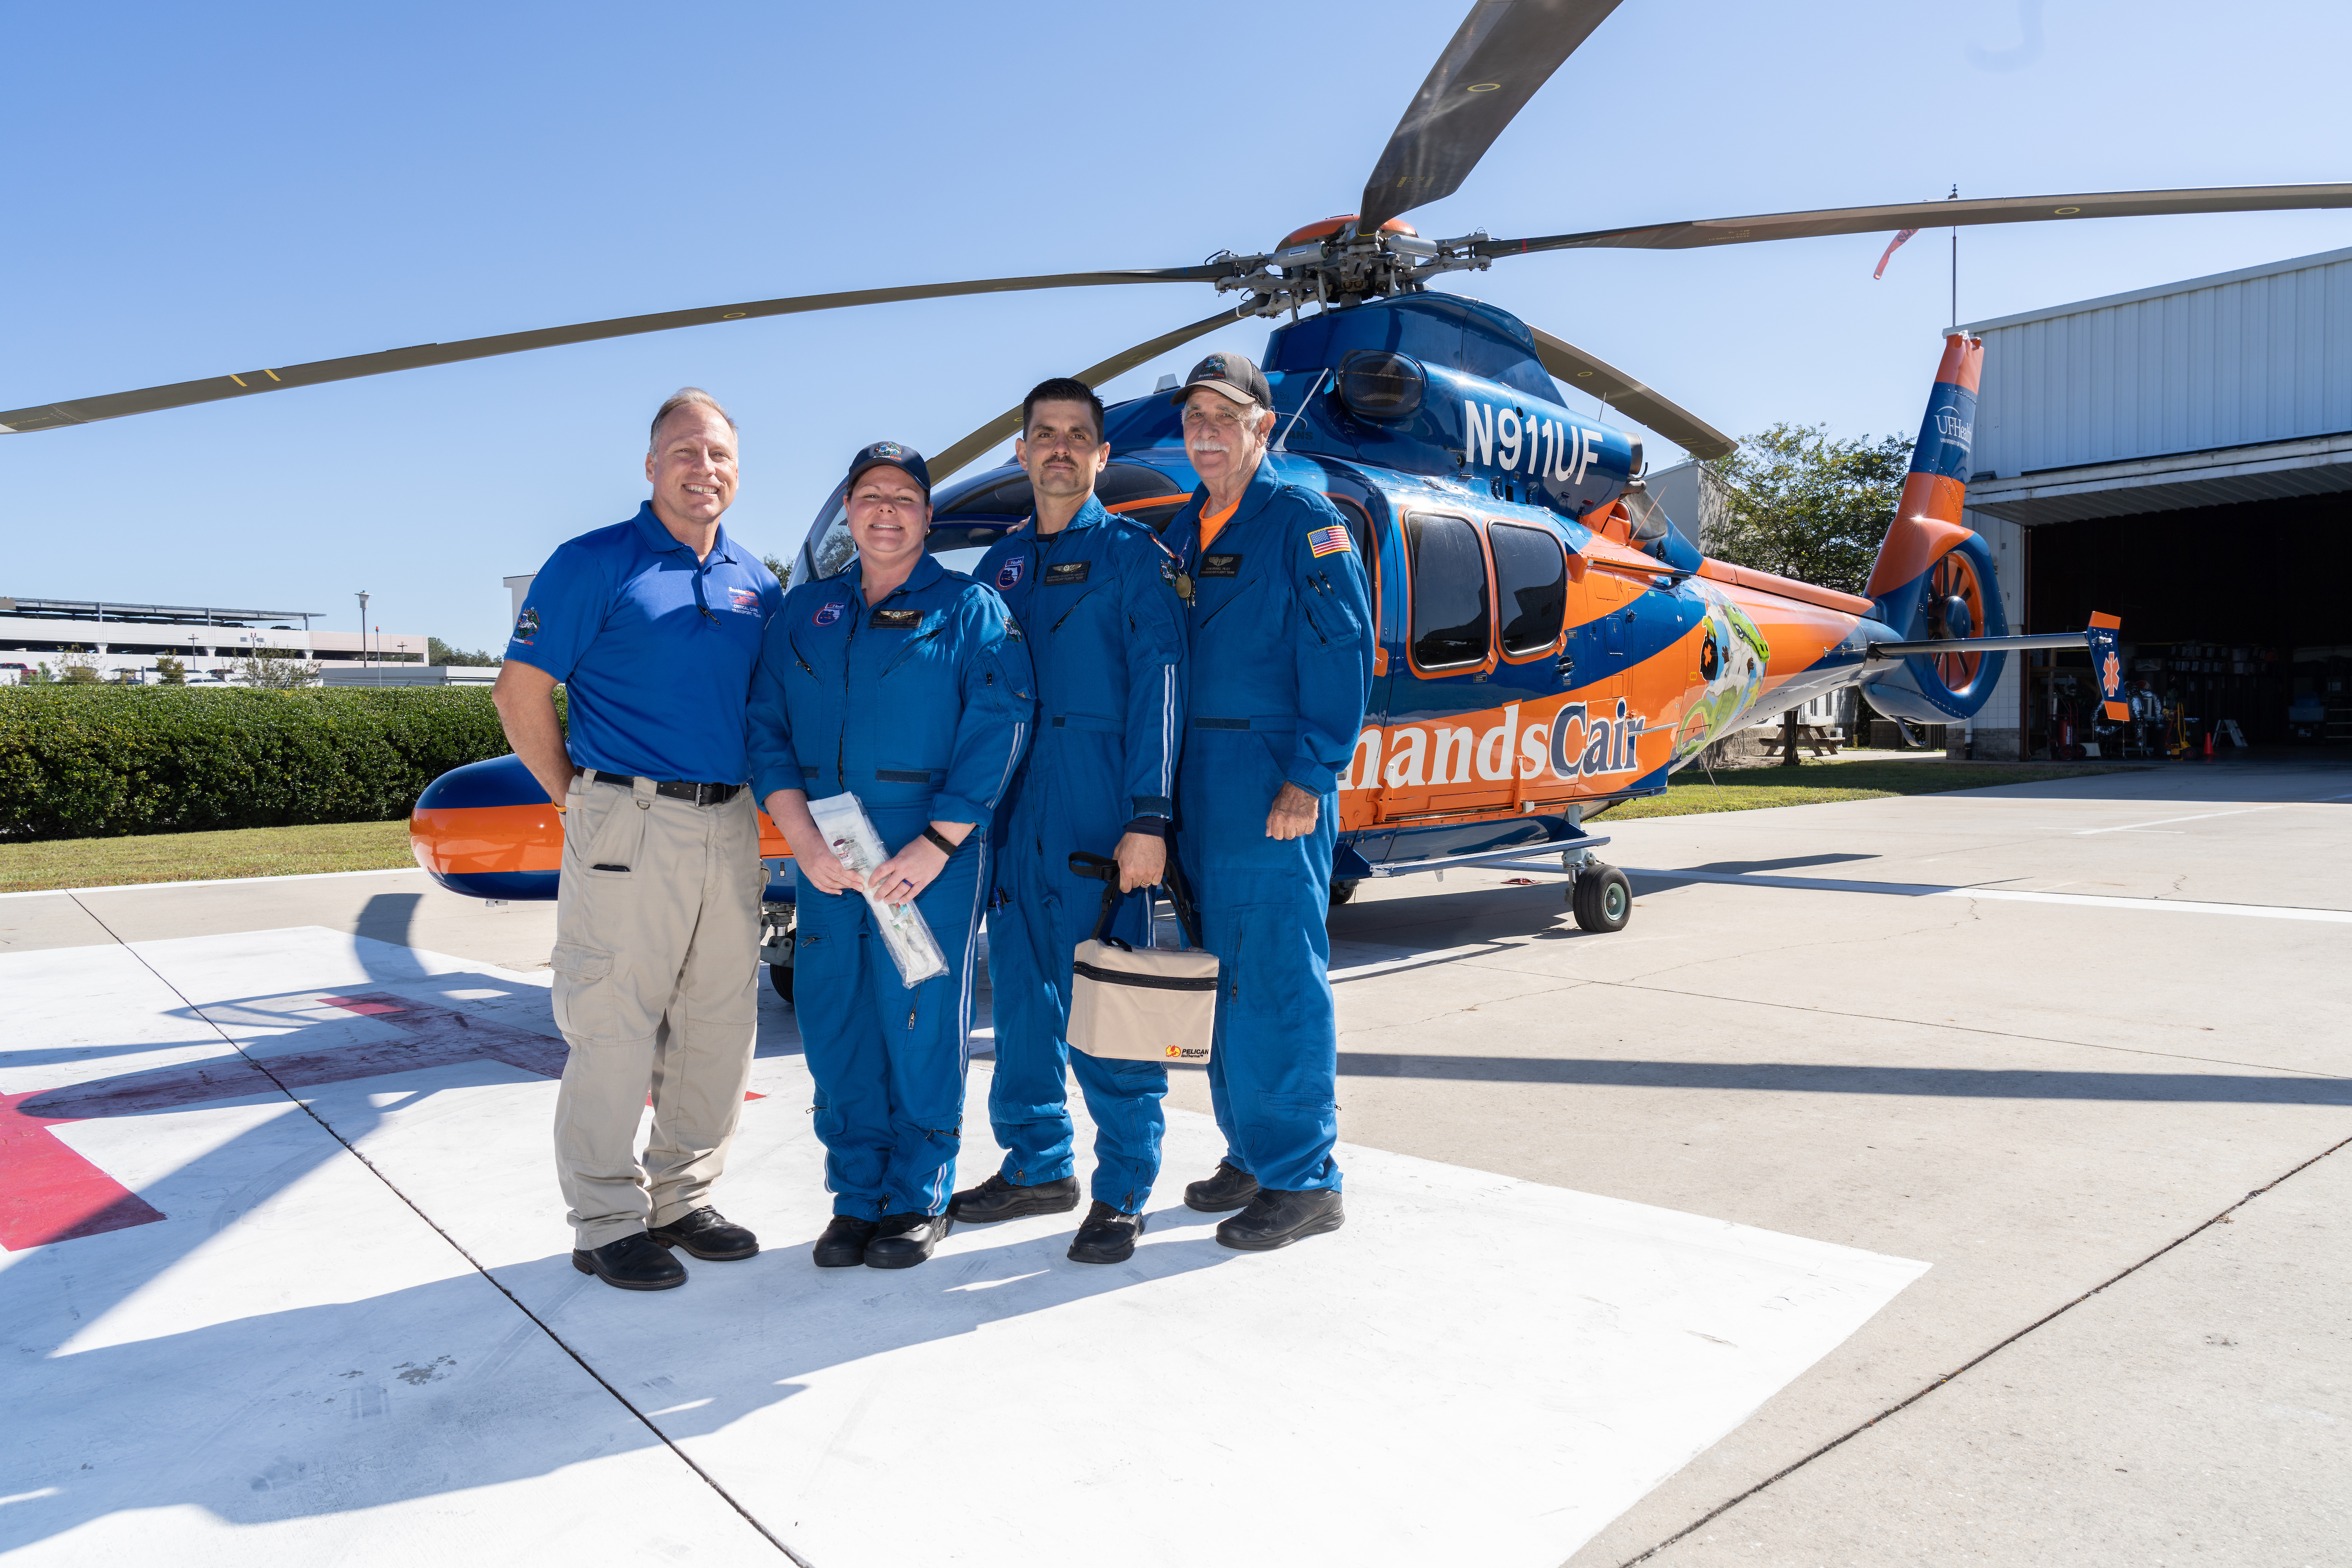 ShandsCair team of four people standing in front of a ShandsCair helicopter